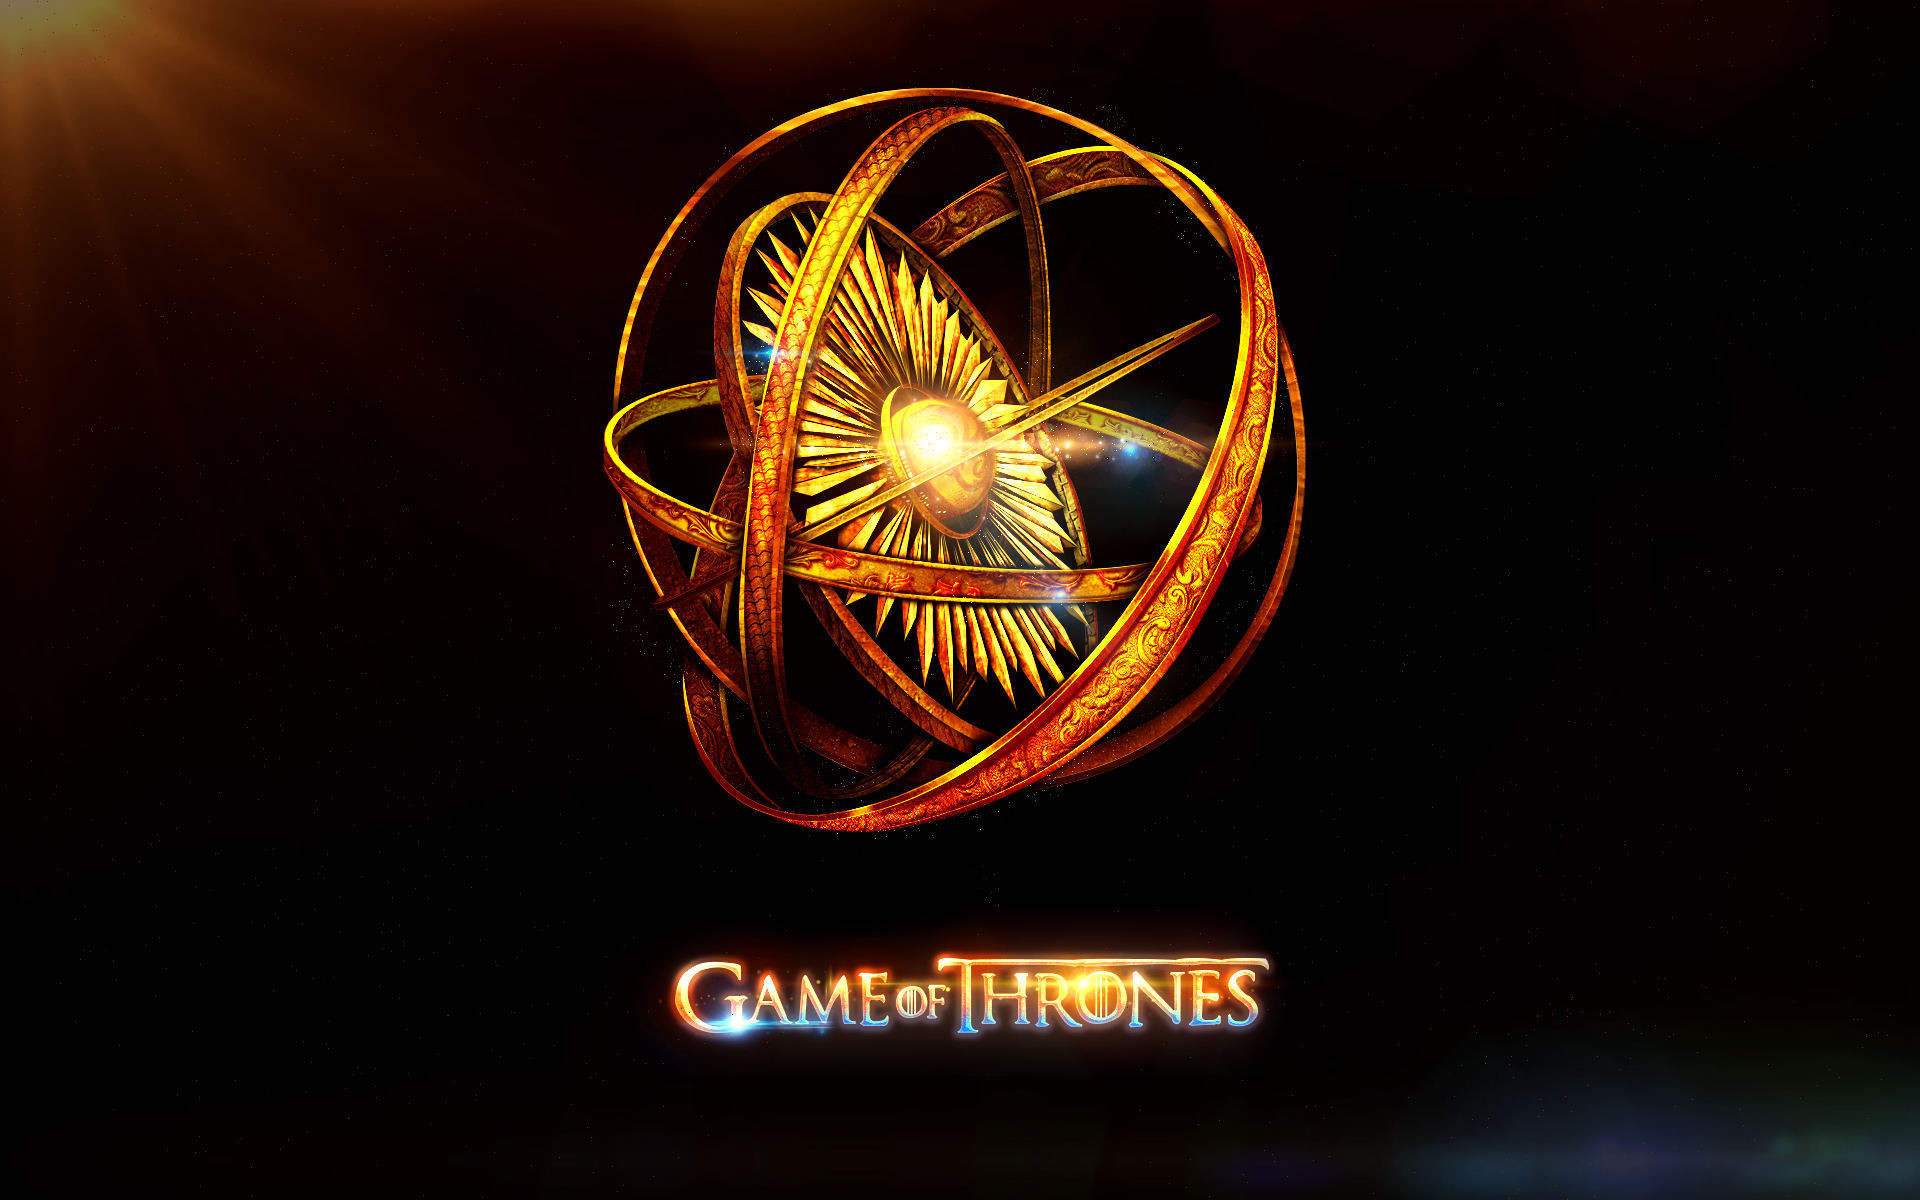 Game of Thrones wallpaper by jjfwh